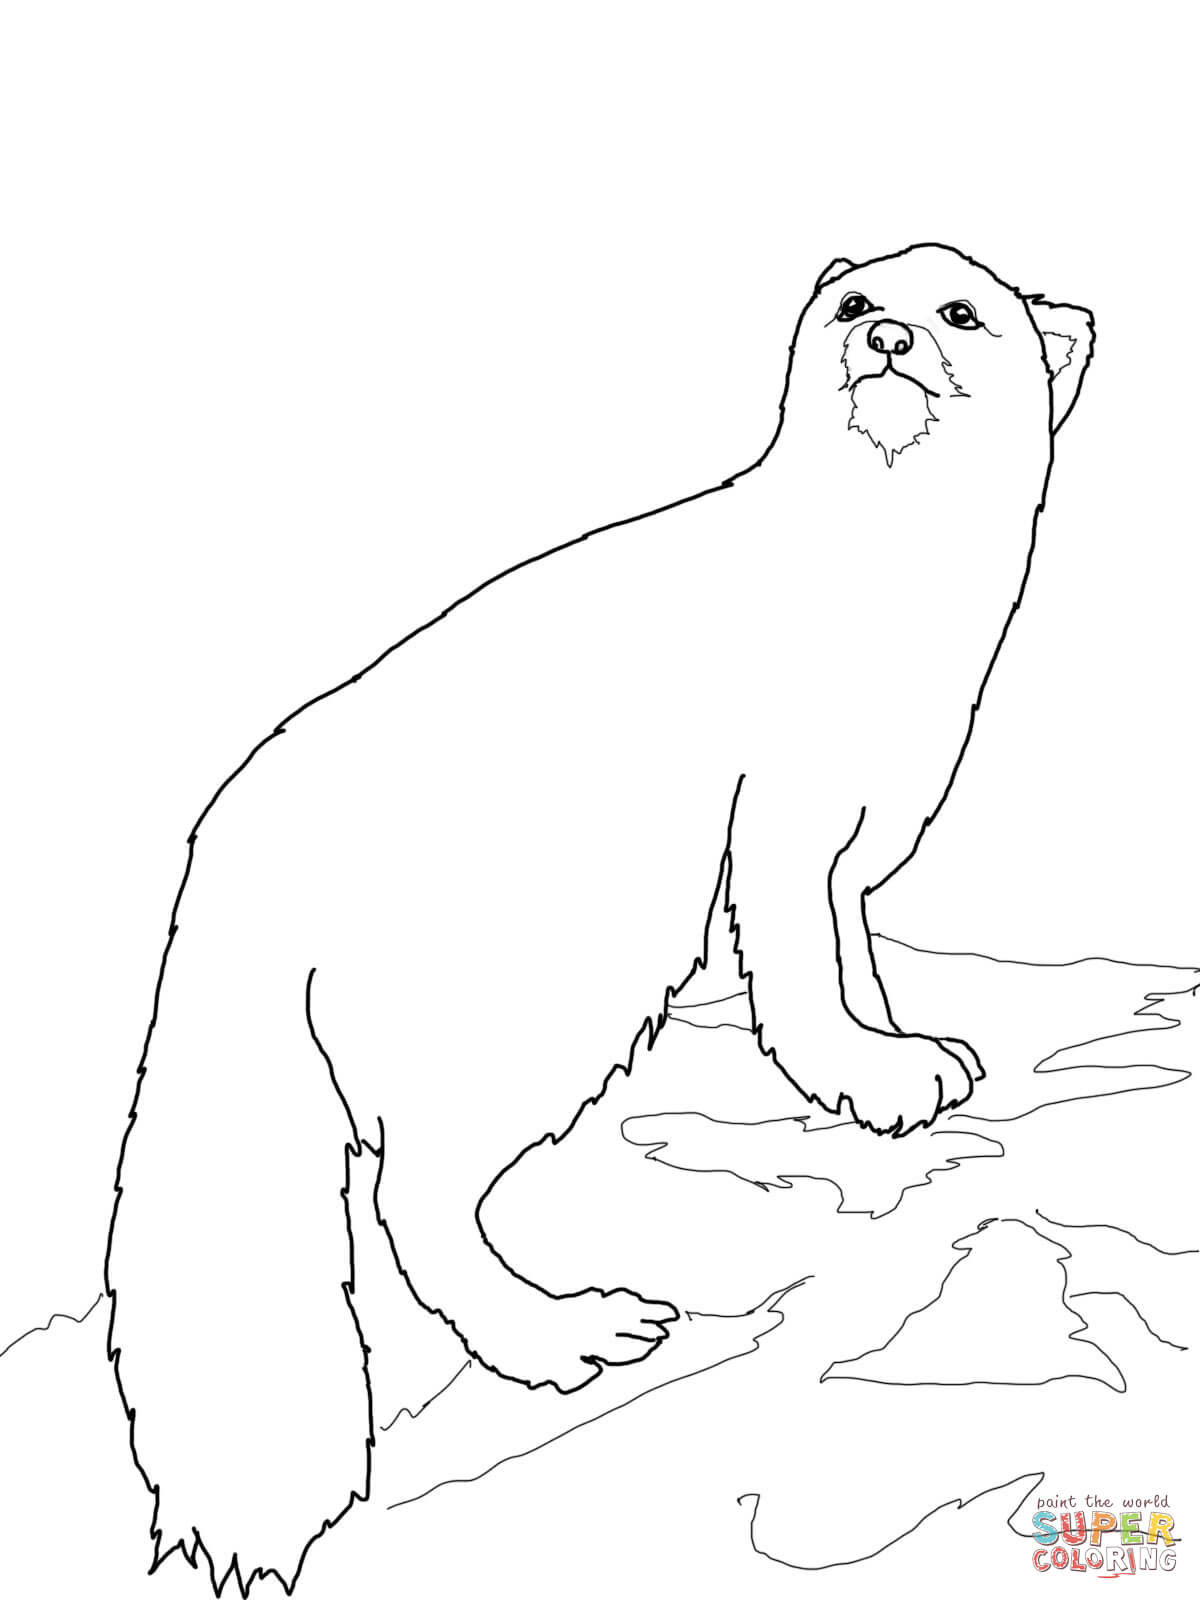 arctic fox coloring pages arctic tundra animals coloring pages arctic fox free arctic fox coloring pages